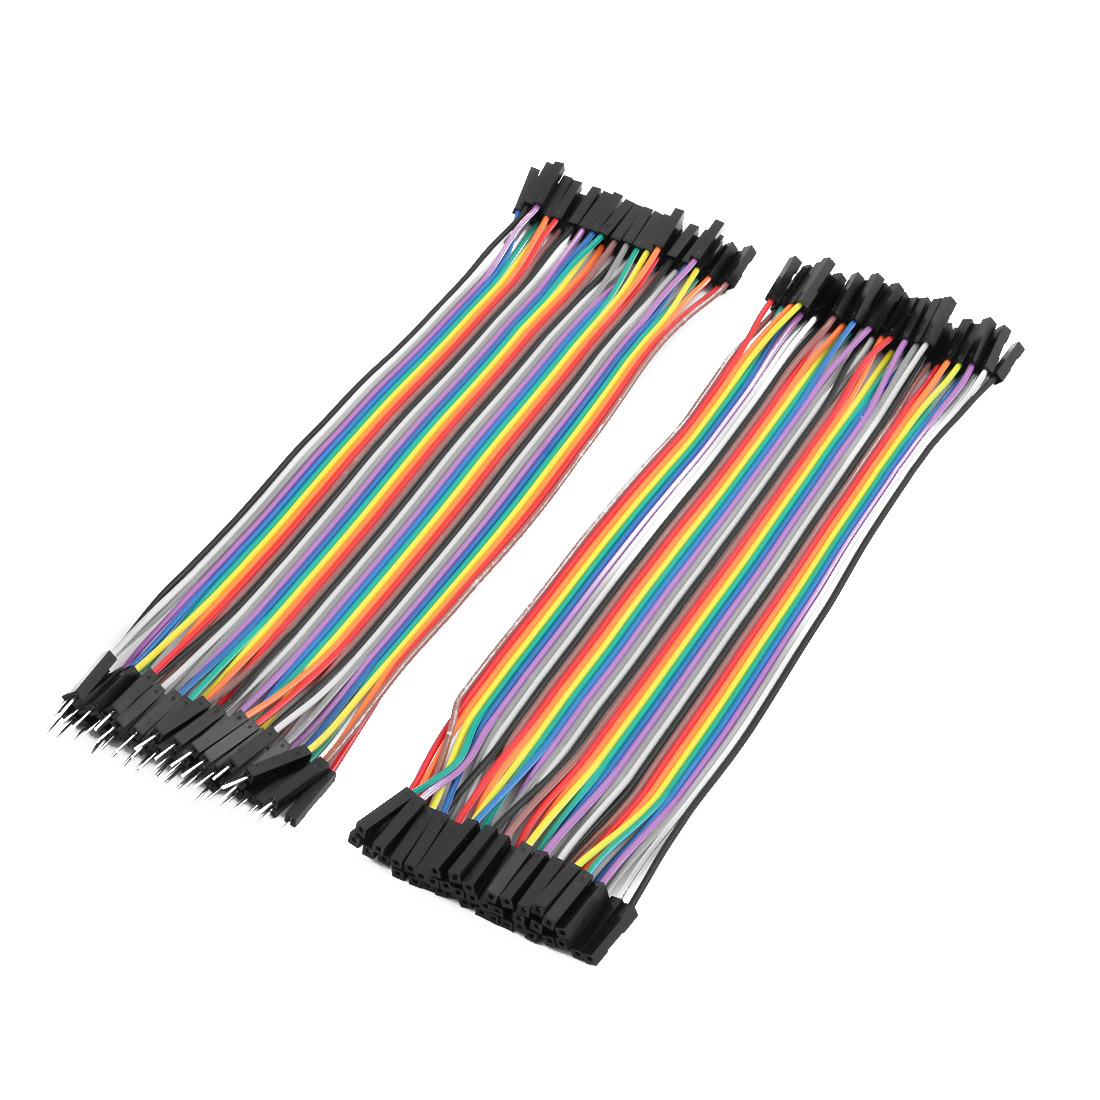 2 pcs Female to Male 40P Jumper Wire Ribbon Cable Pi Pic Breadboard DIY 20cm Long